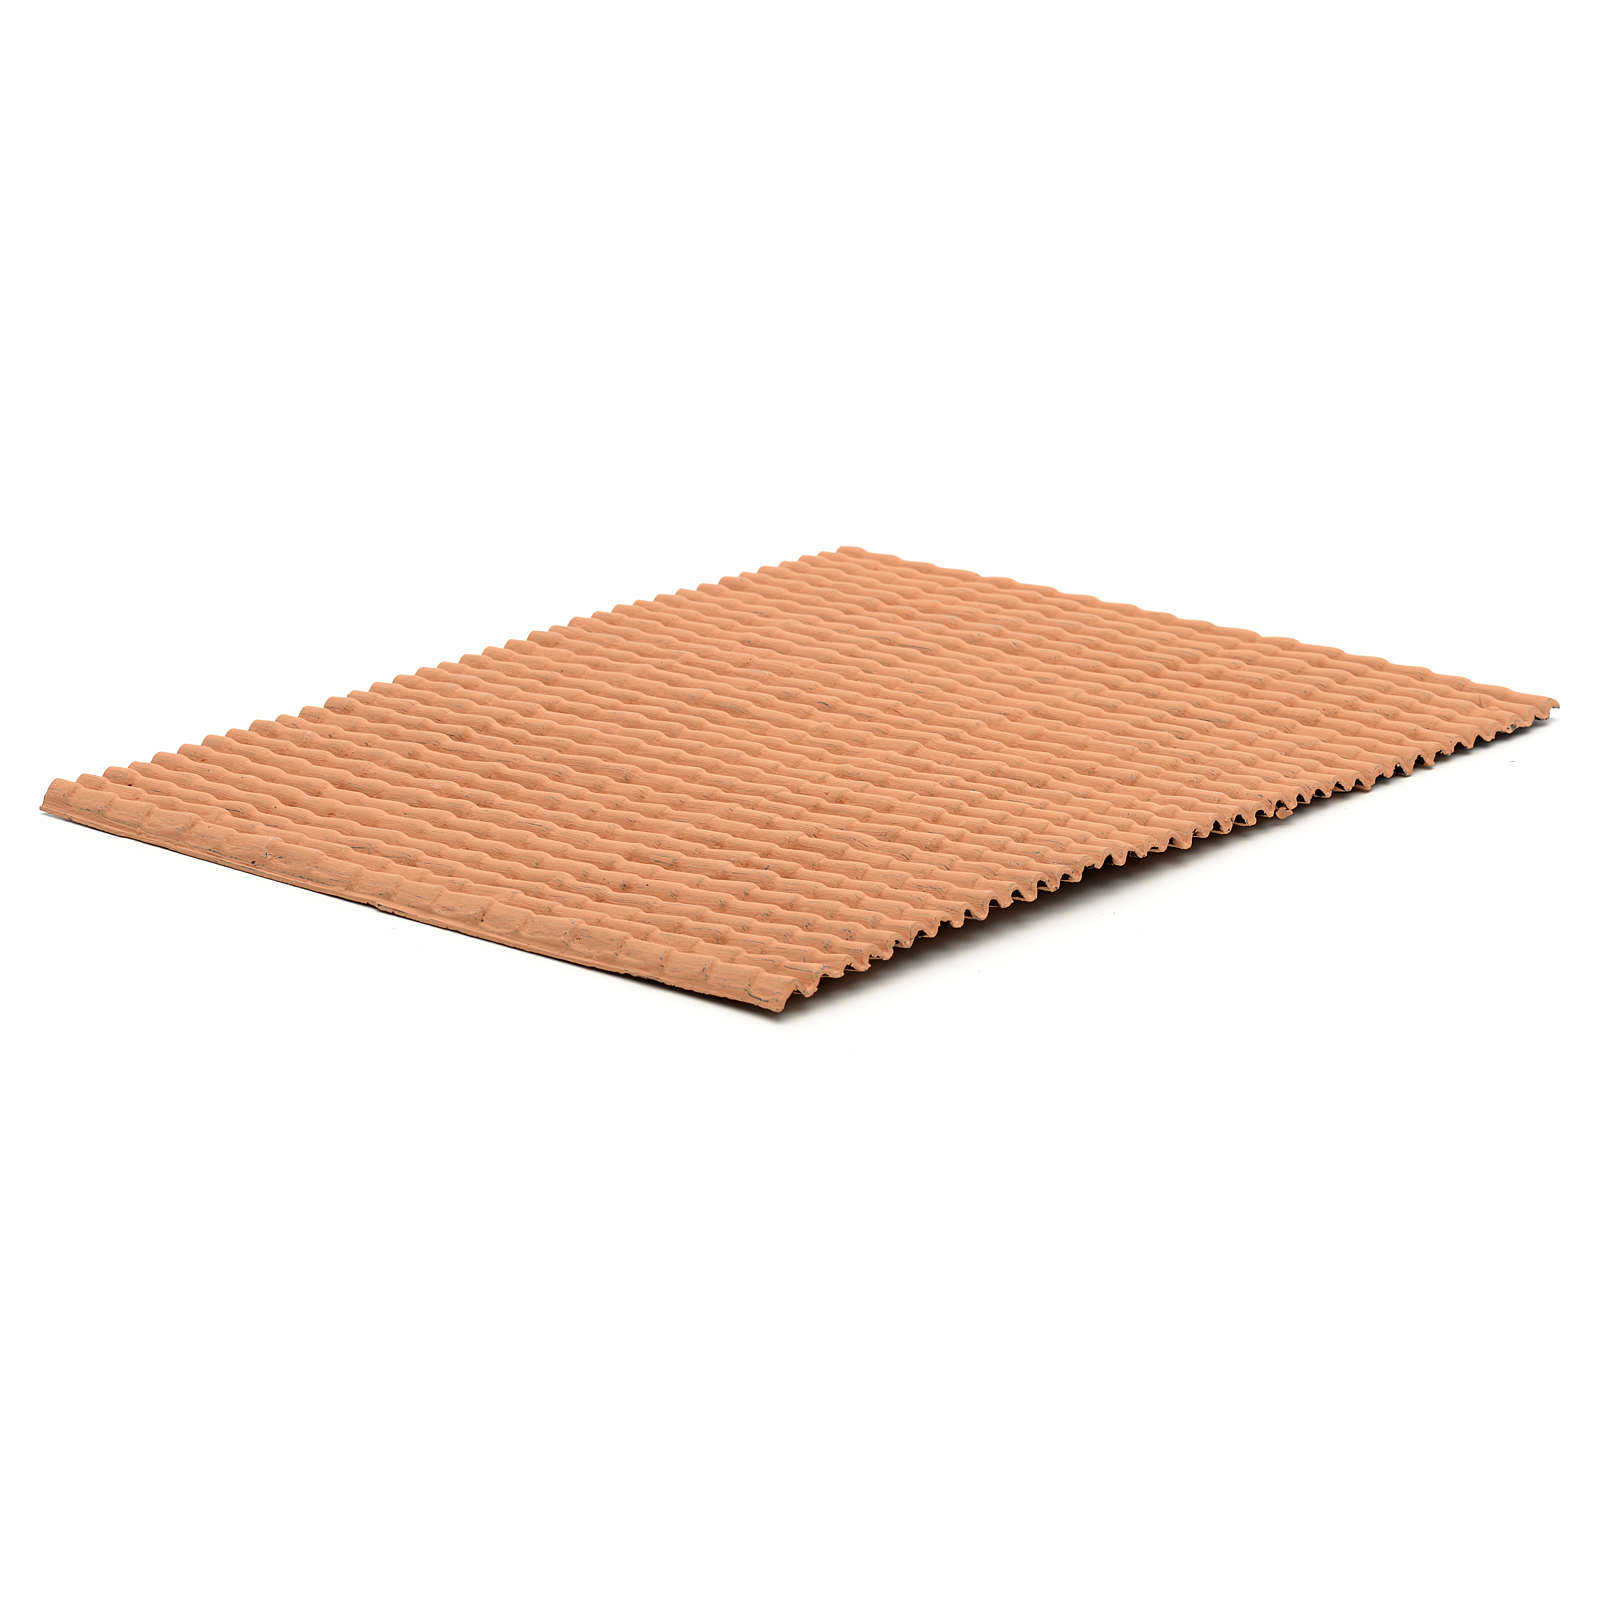 Pannello tetto color terracotta 35x25 4